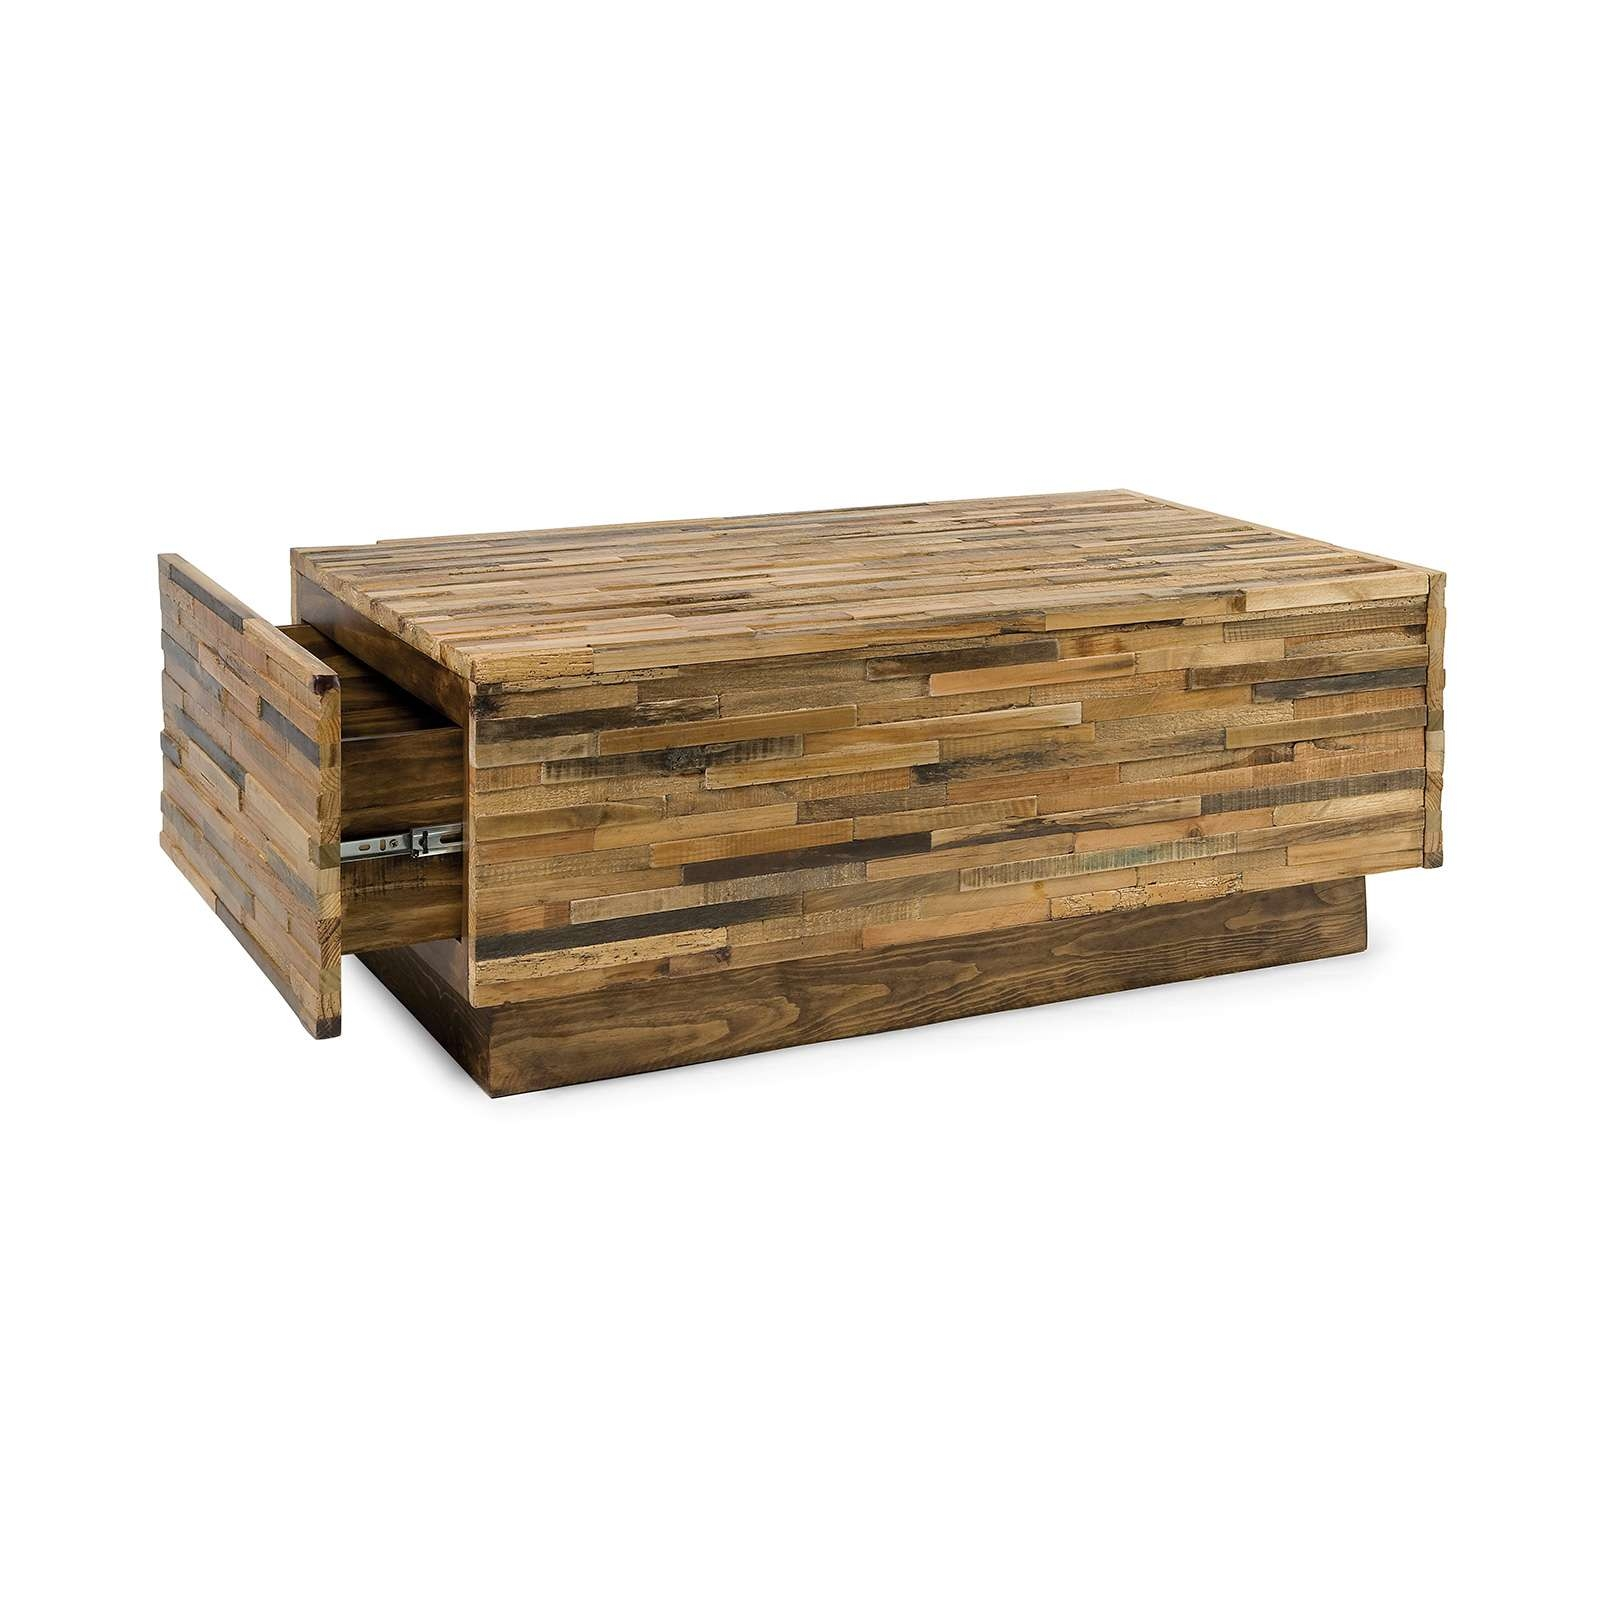 Simple Reclaimed Wood Coffee Table Home Furniture – Pottery Barn Regarding Most Up To Date Reclaimed Wood And Glass Coffee Tables (View 17 of 20)